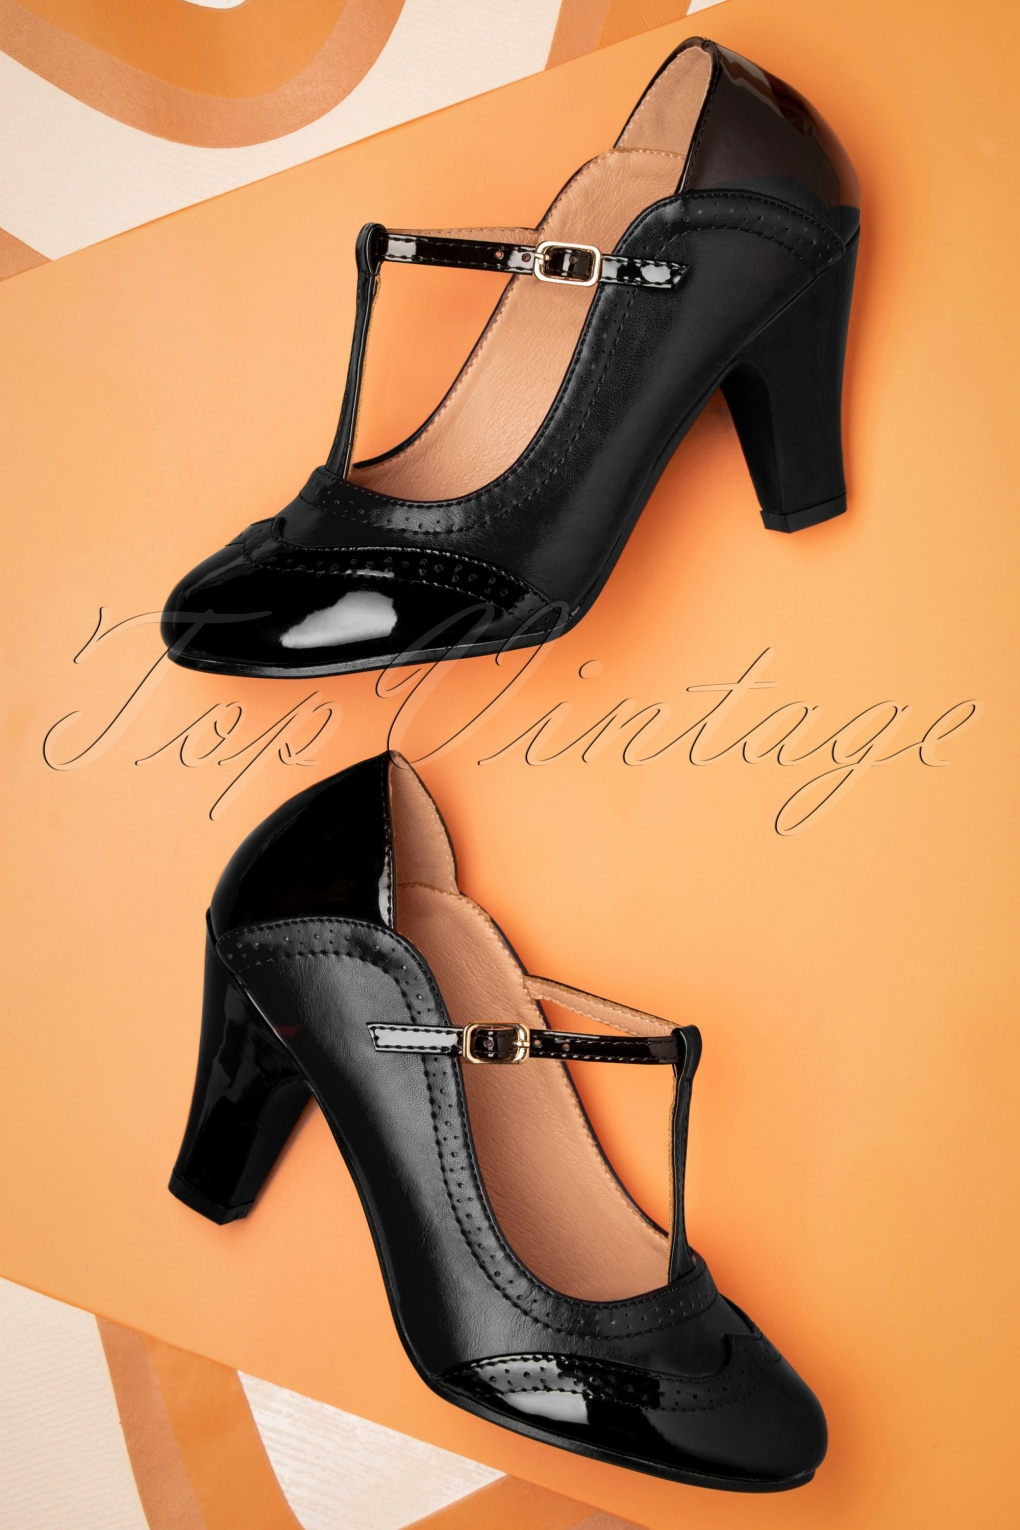 Vintage Heels, Retro Heels, Pumps, Shoes 50s Diva Blues T-Strap Pumps in Black £52.59 AT vintagedancer.com